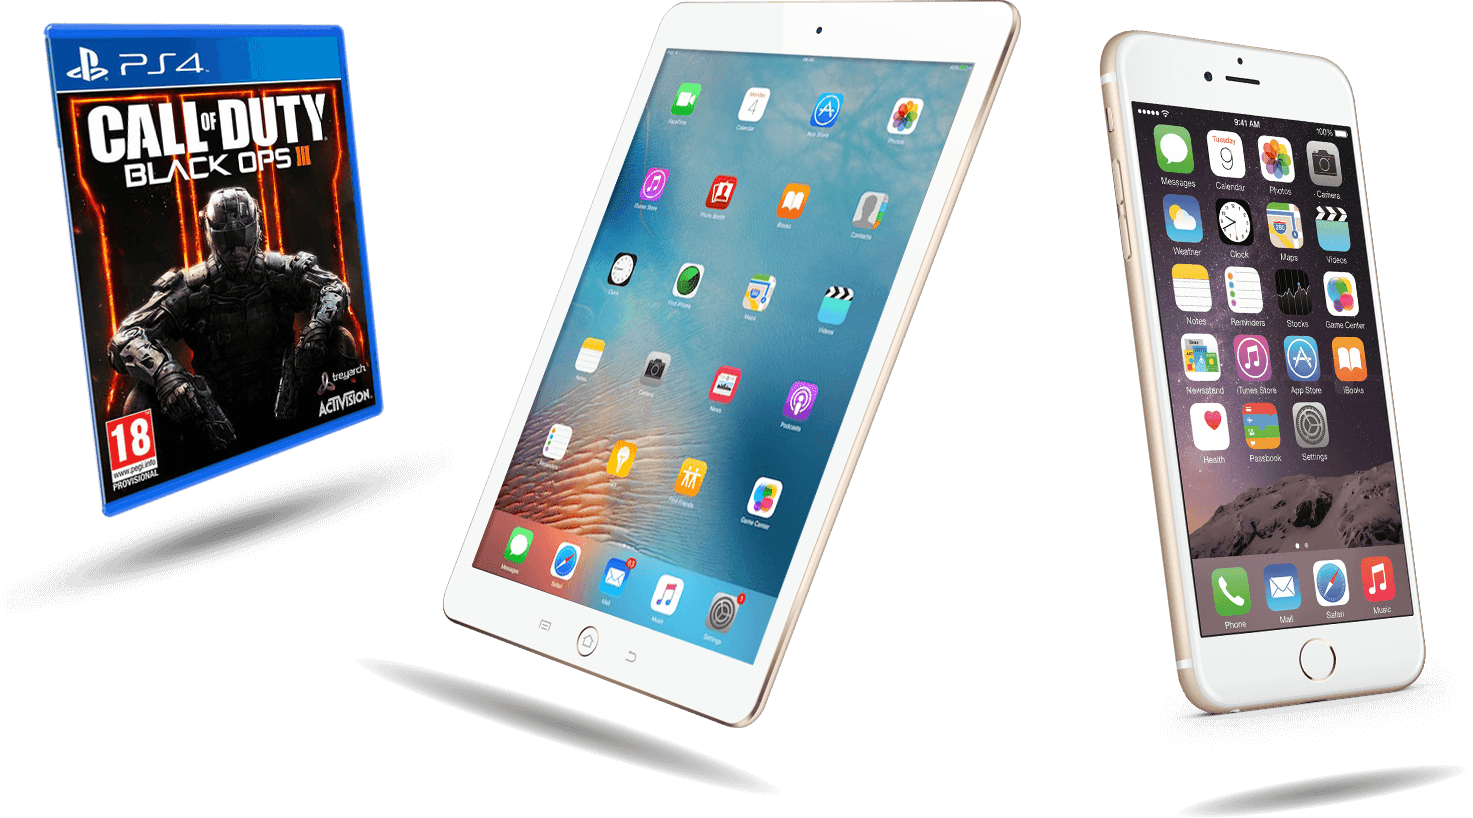 Trade-in your iPad, phone or games.